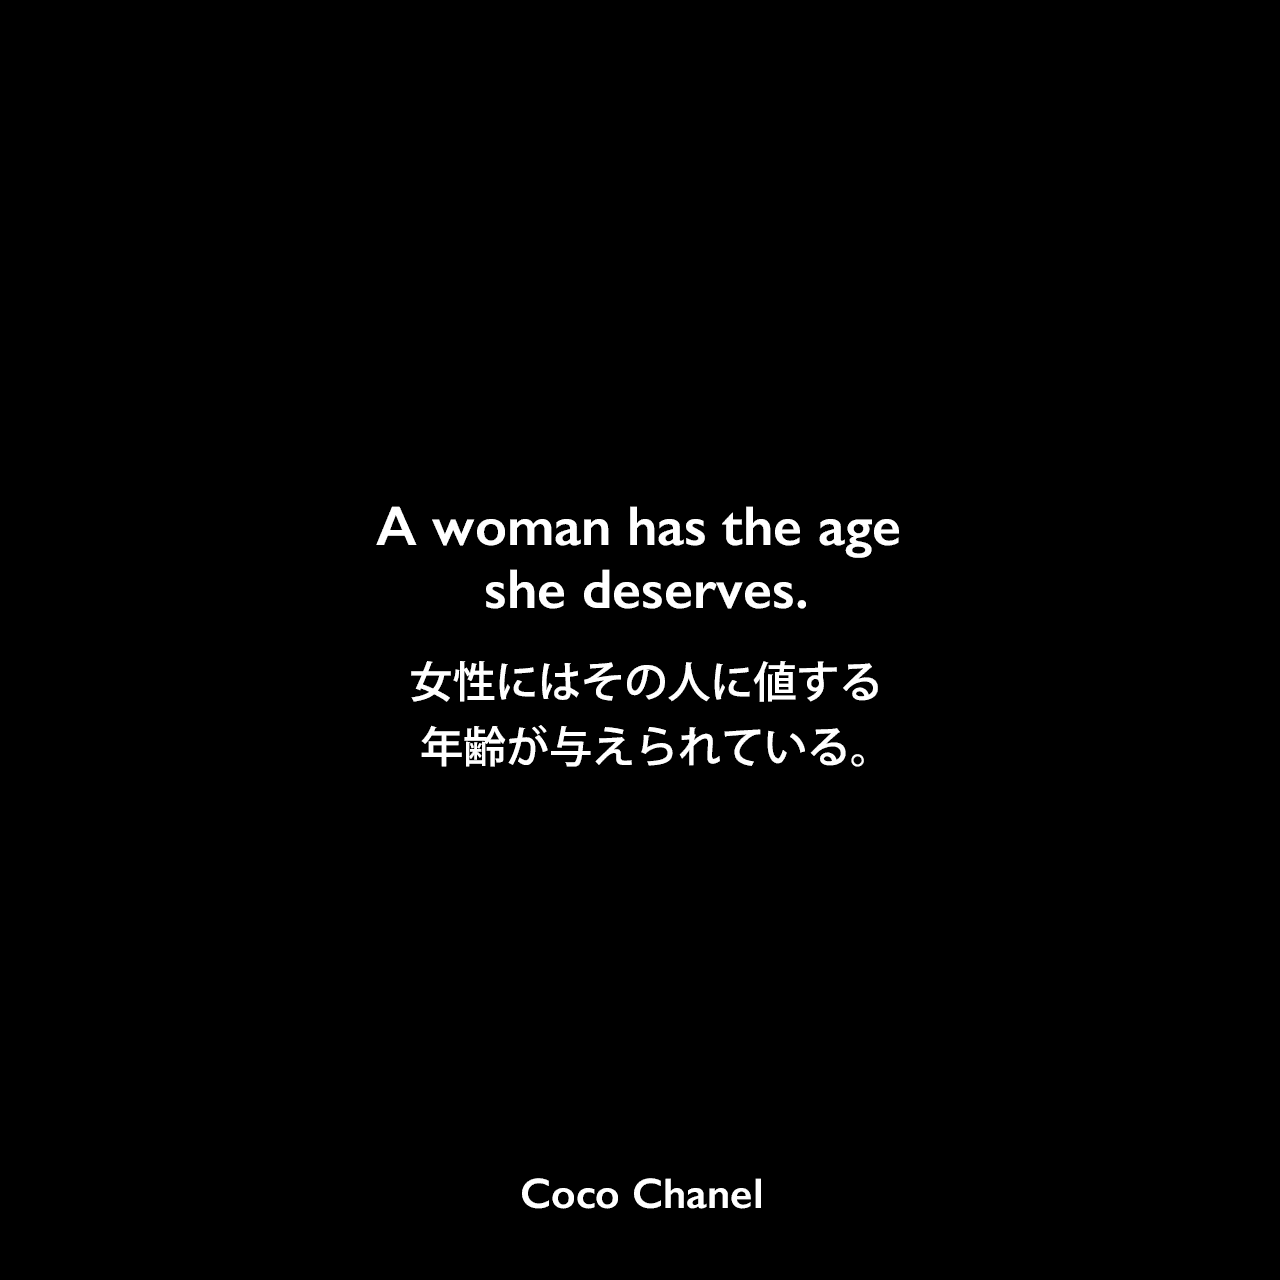 A woman has the age she deserves.女性にはその人に値する年齢が与えられている。Coco Chanel